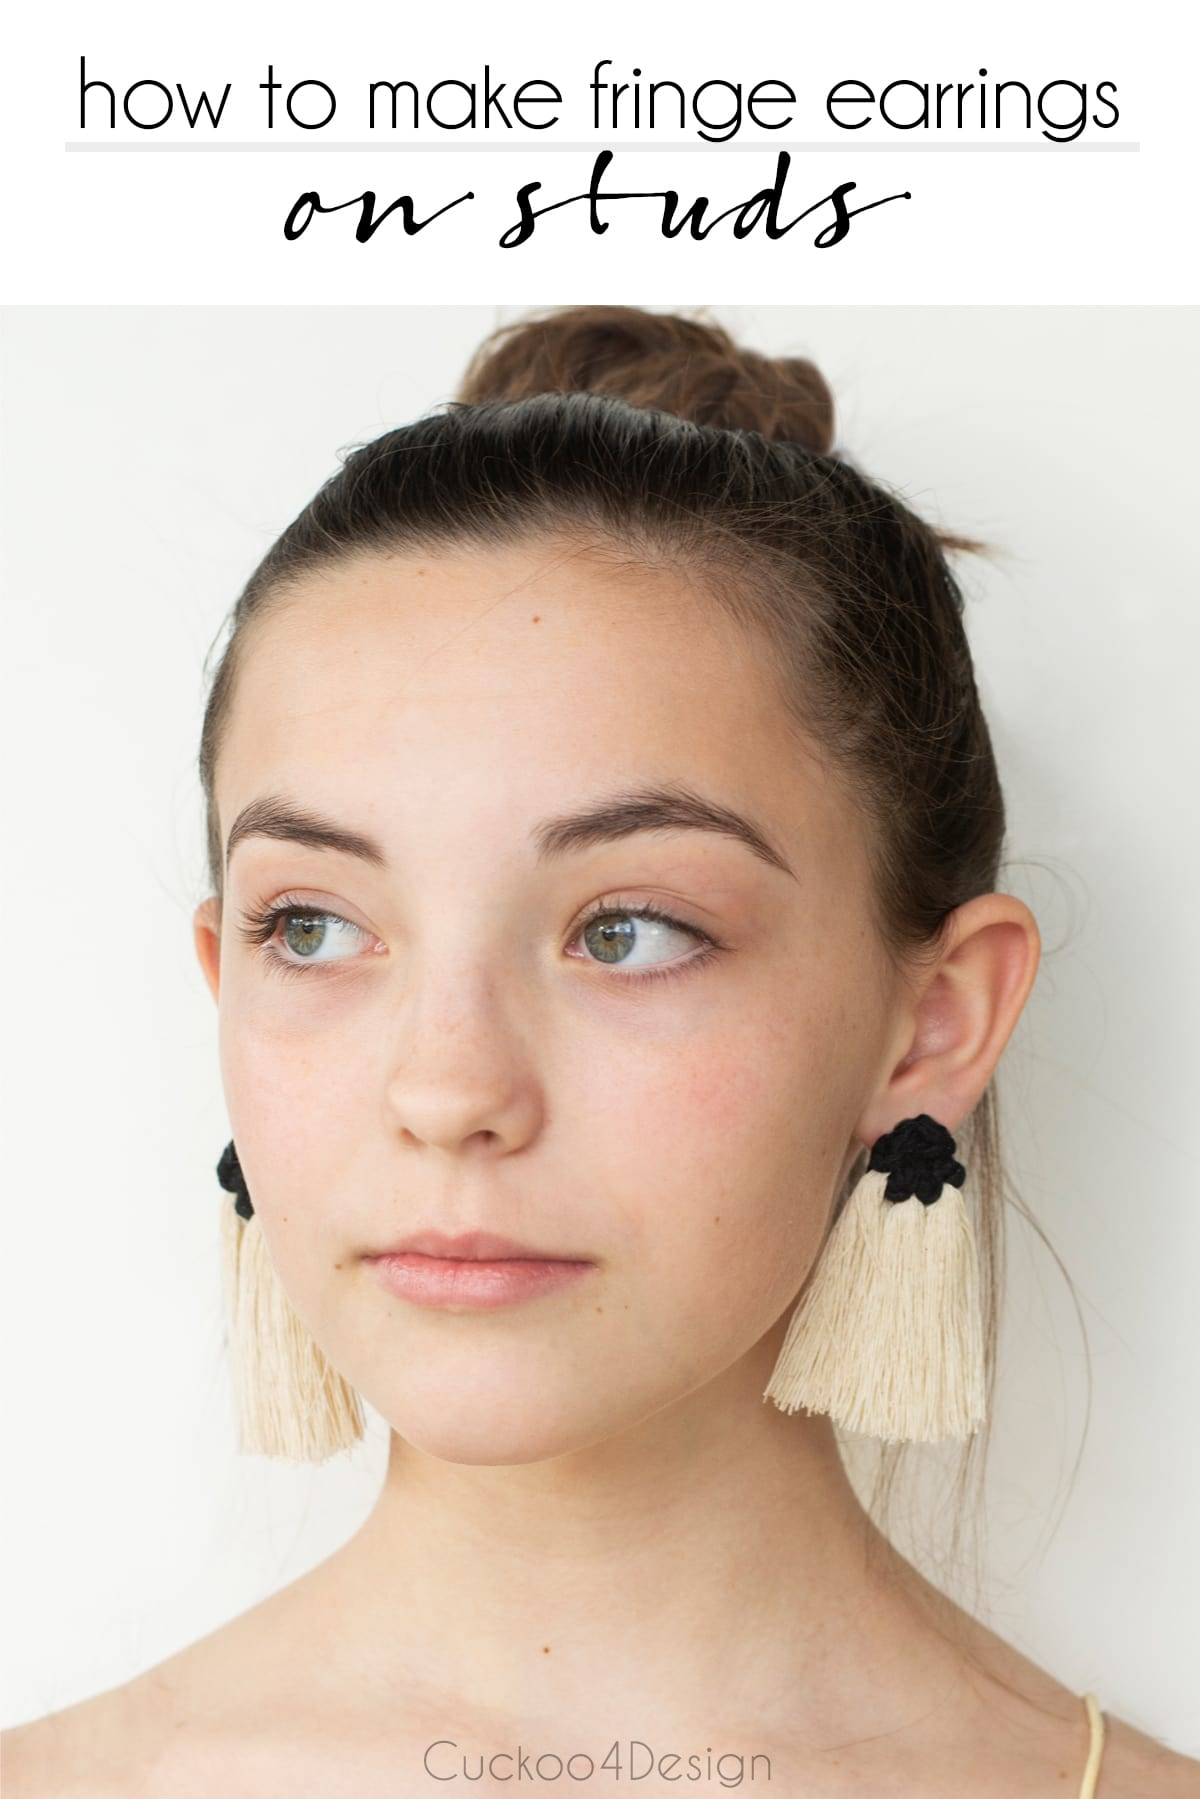 How to make fringe earrings on studs and not hoops